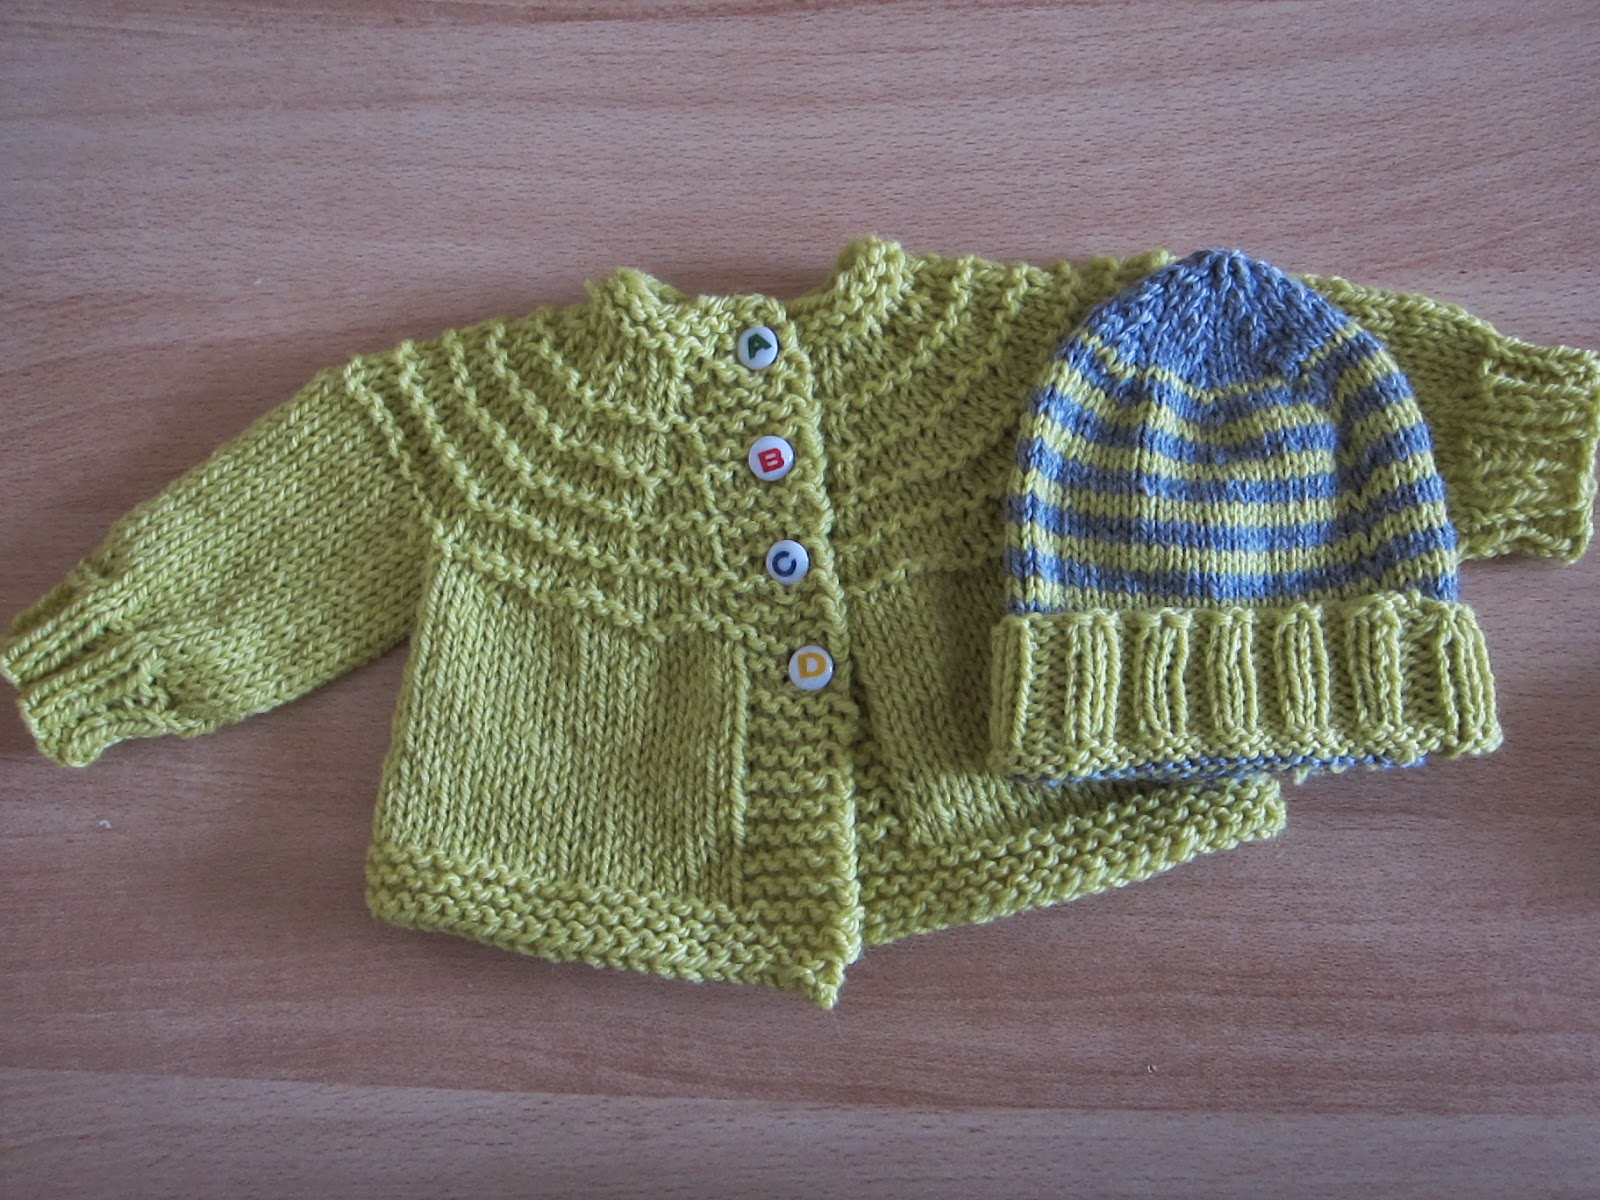 Perfecto 5 Hour Baby Sweater Knitting Pattern Free Ilustración ...